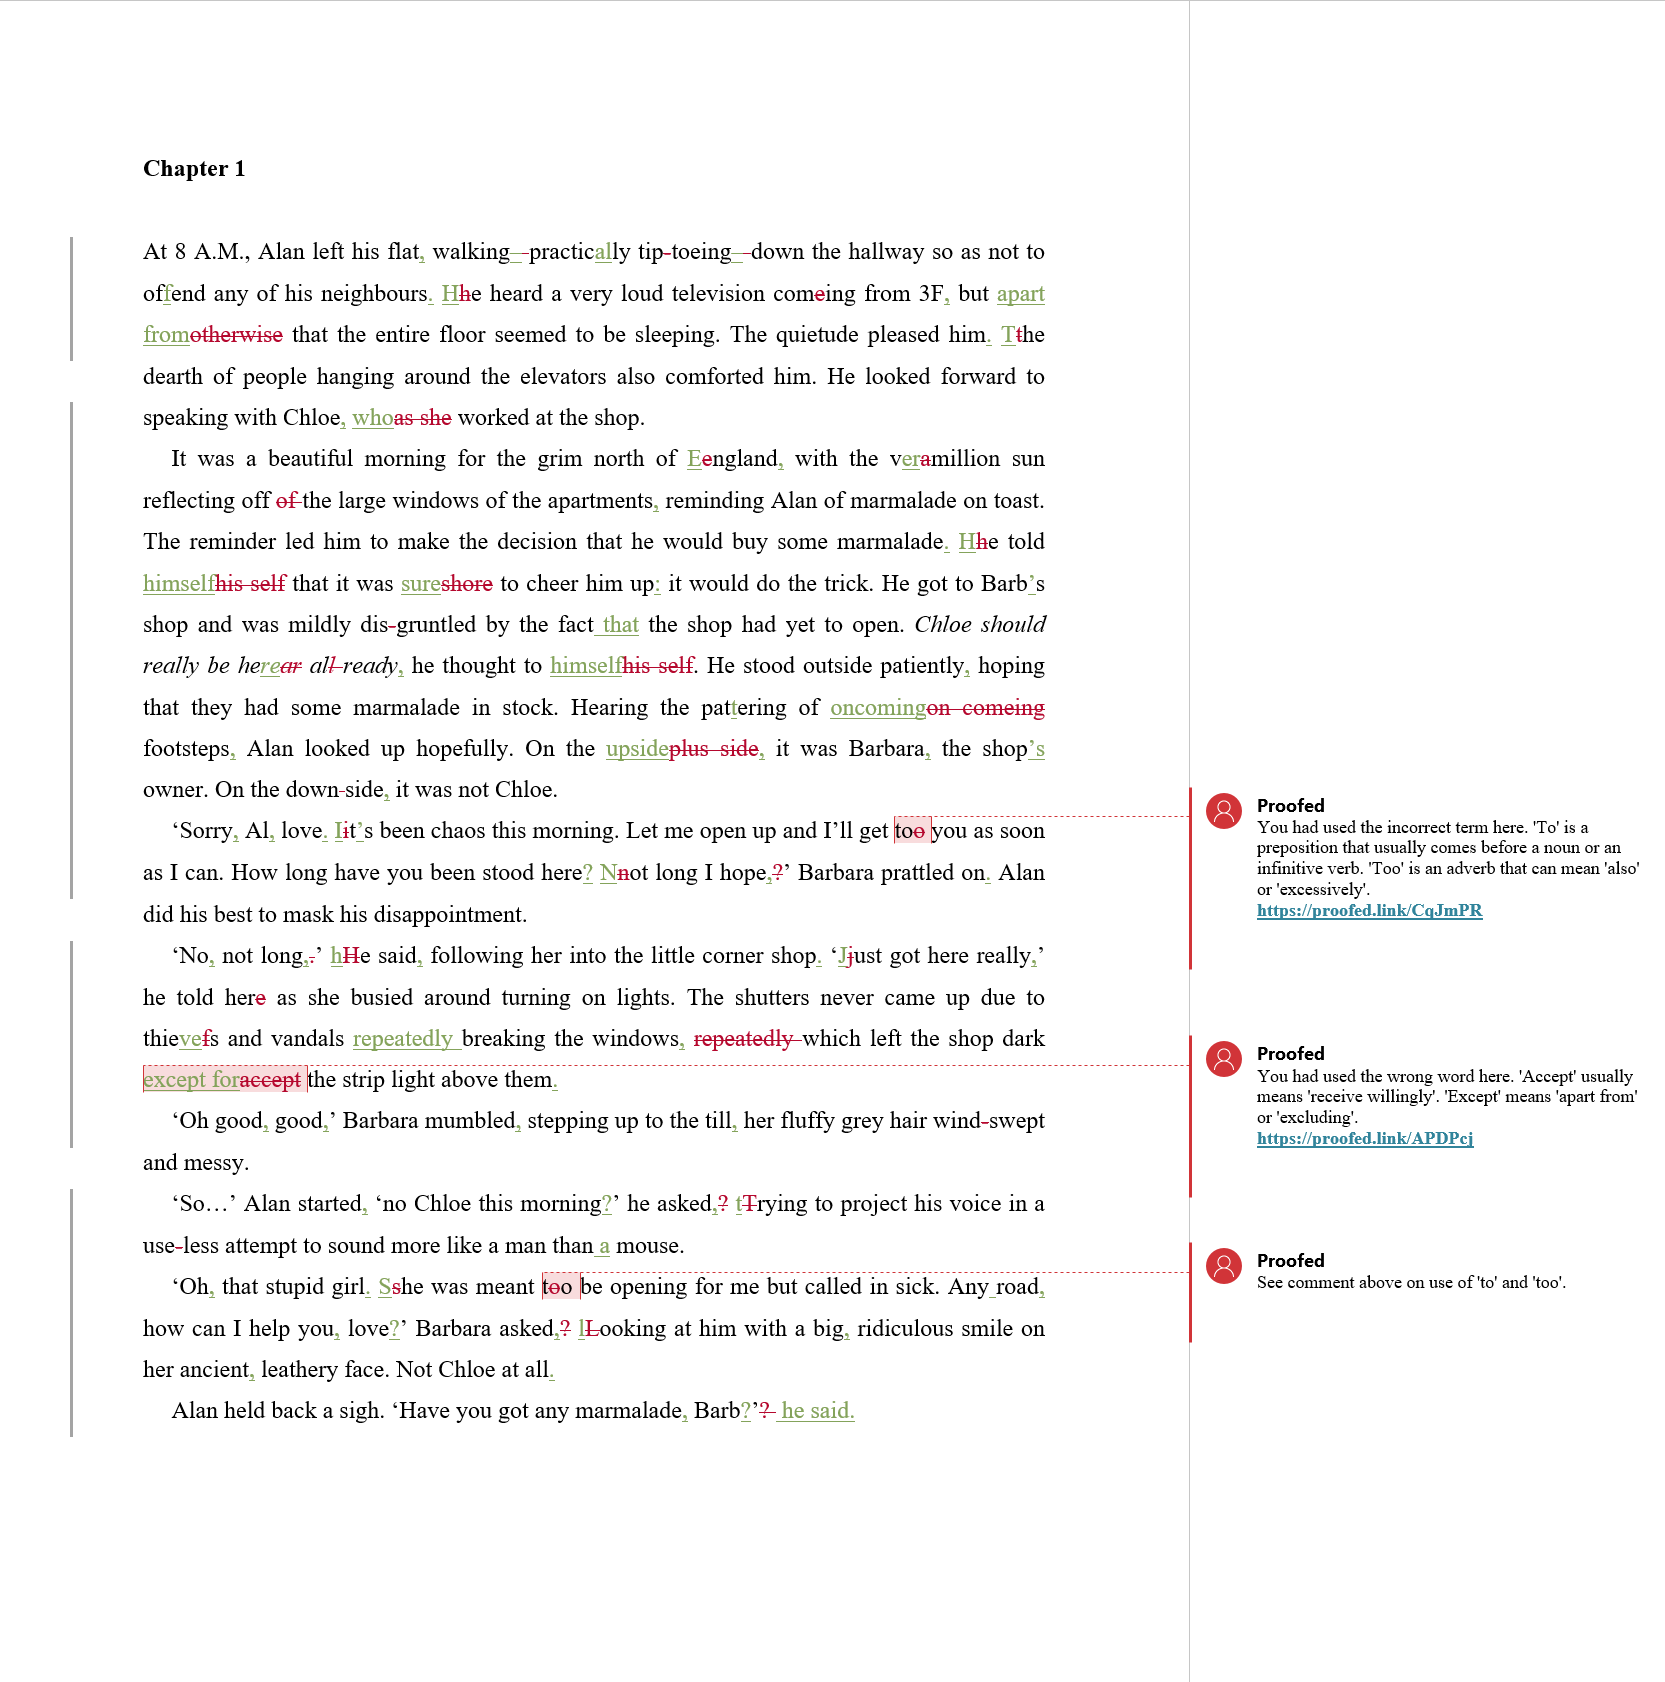 Manuscript Proofreading Example (After Editing)